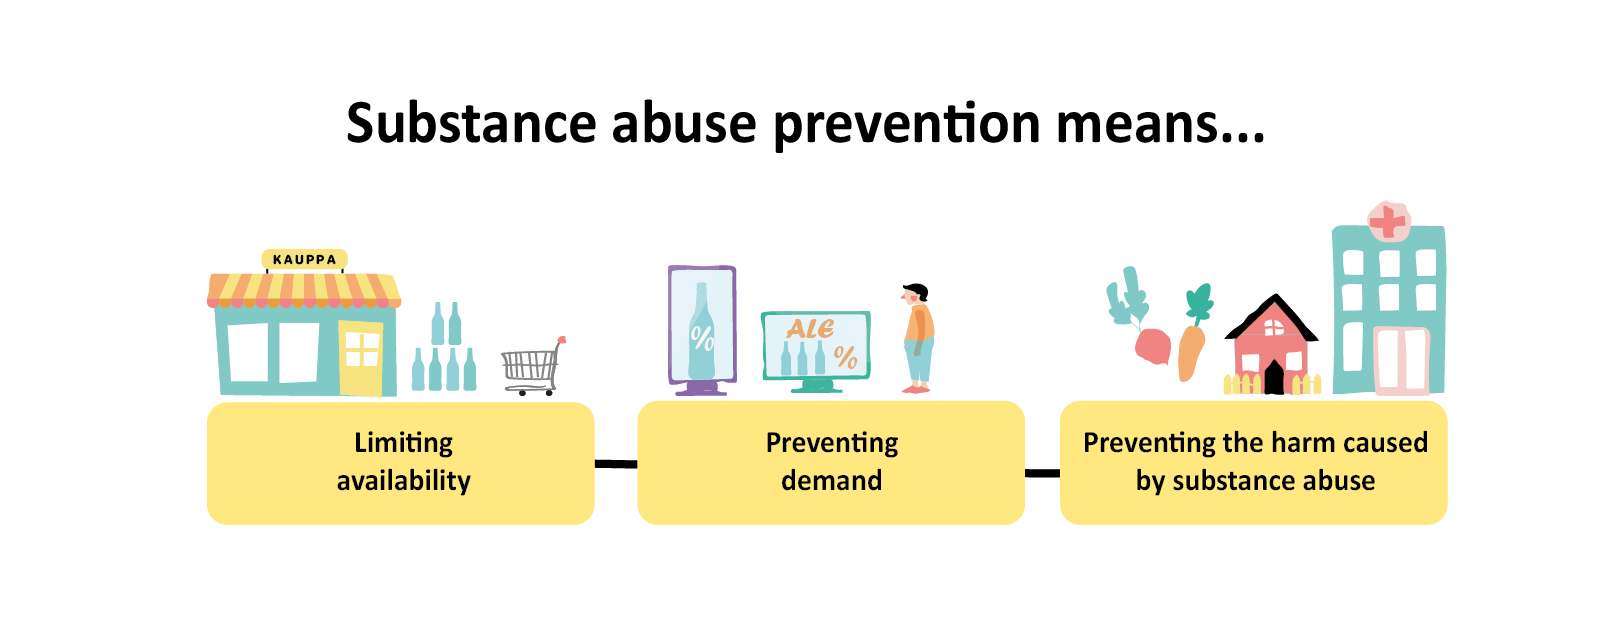 An infographic that explains that substance abuse prevention work can be done in three different ways: by limiting availability, by preventing demand, and by preventing harm caused by substance abuse.